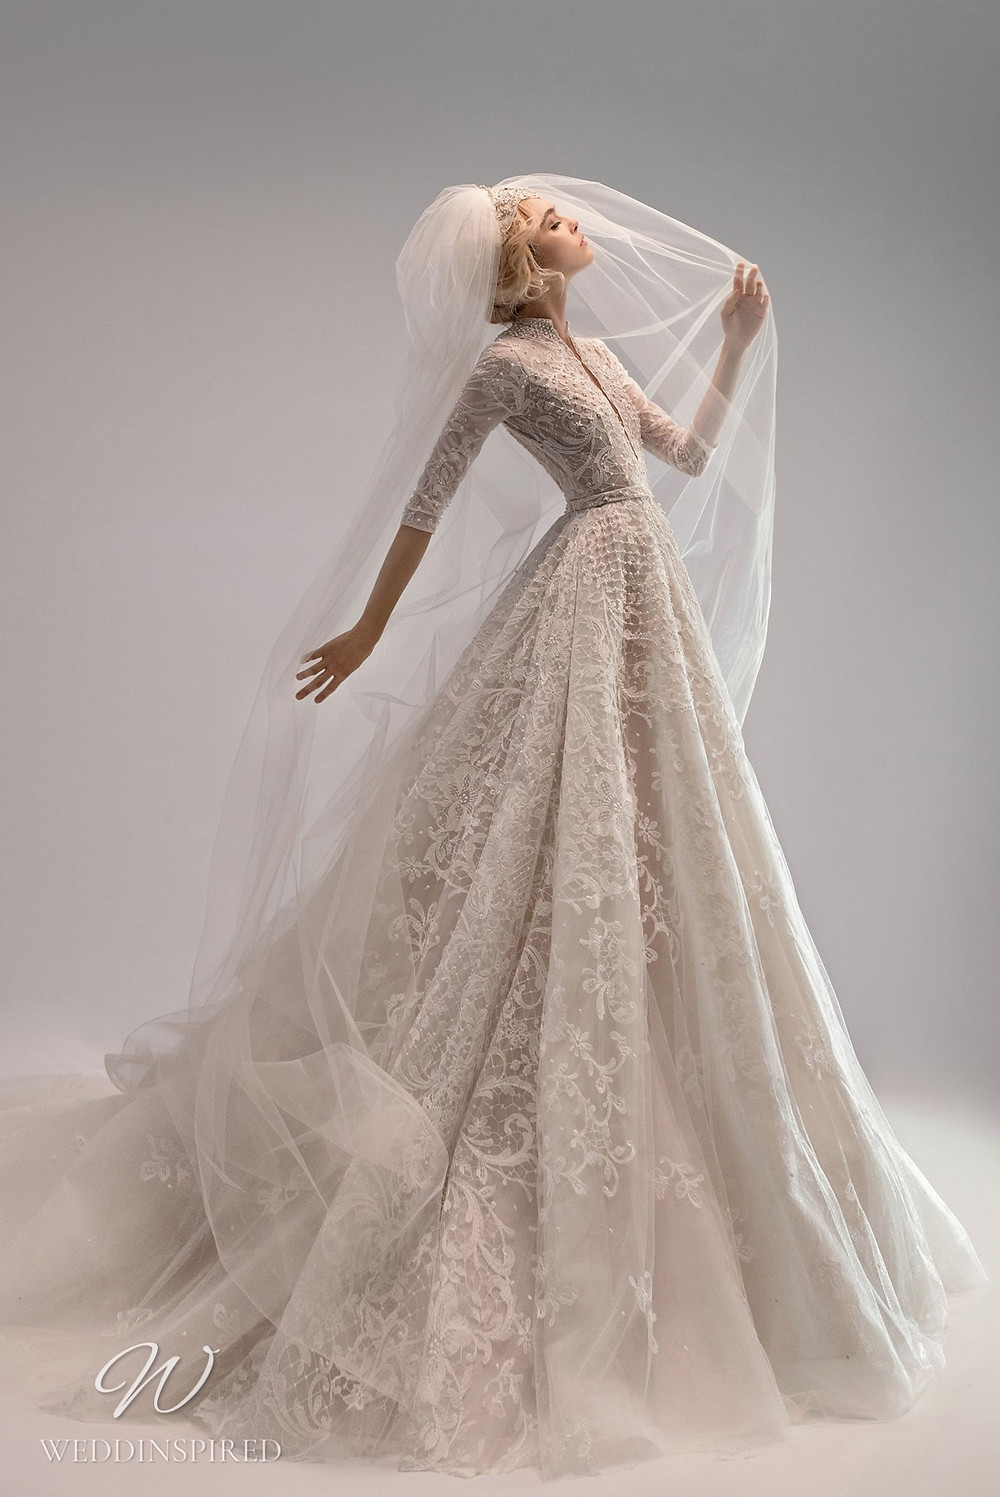 An Ersa Atelier 2021 off white ball gown wedding dress with tulle, lace, half sleeves and beading